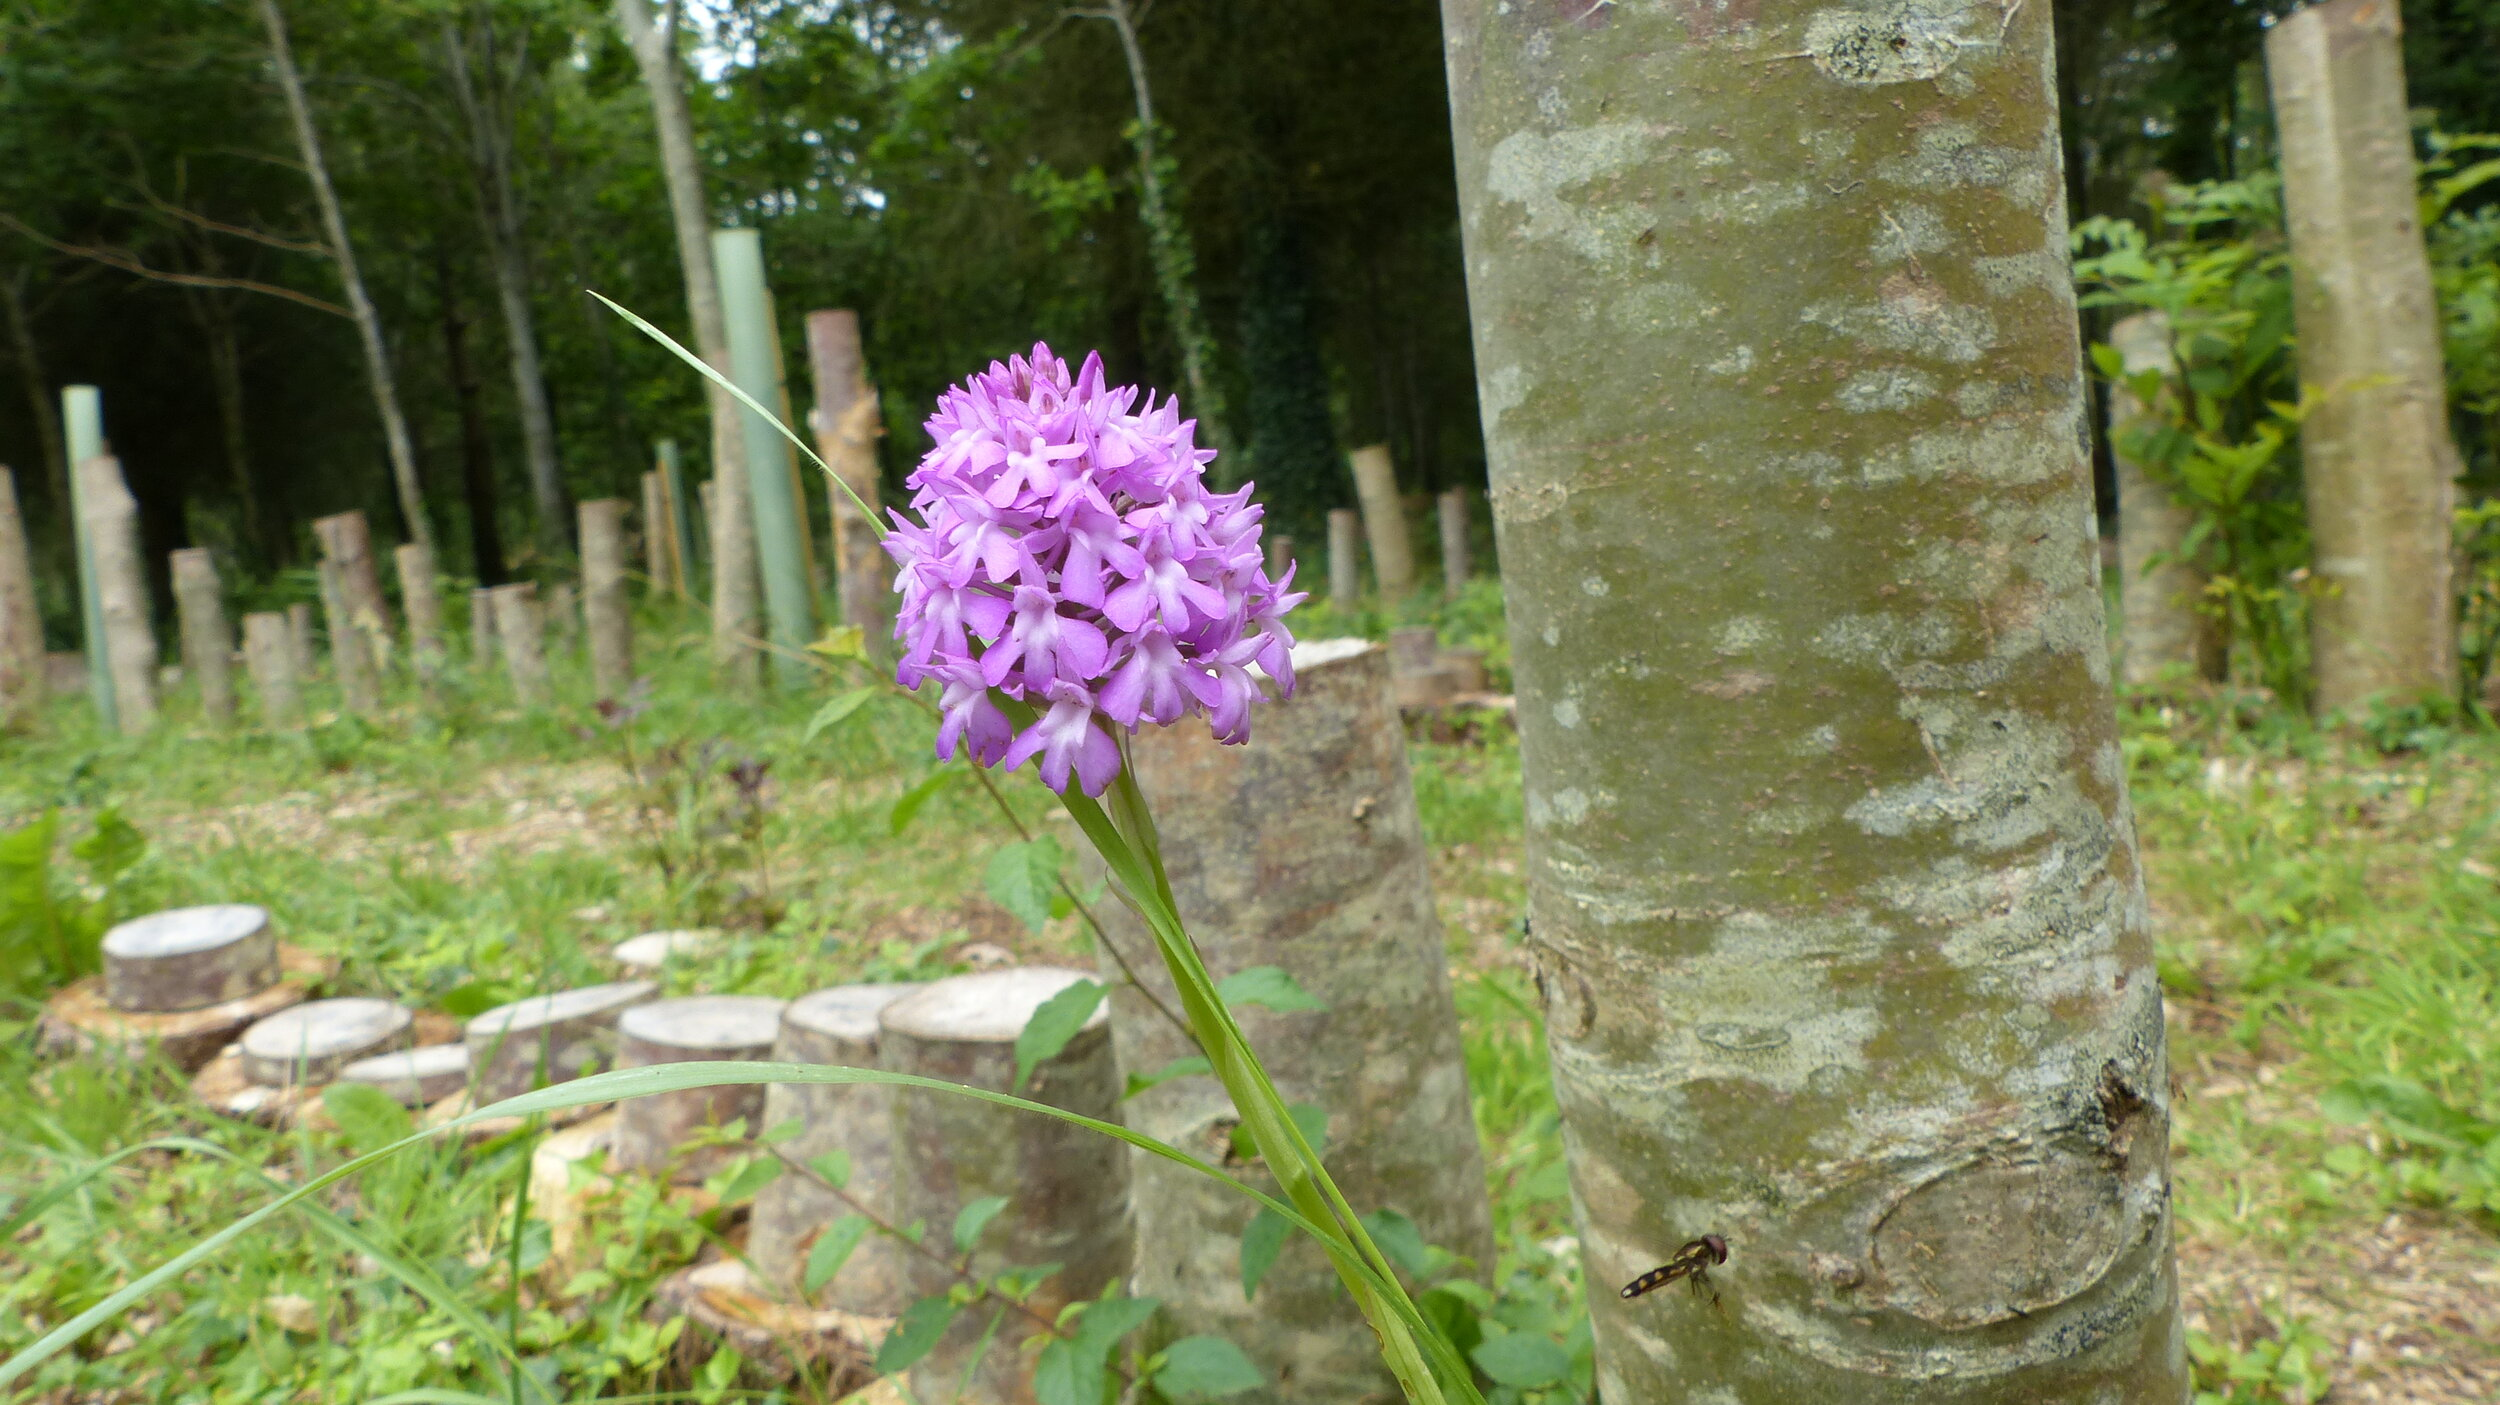 Pyramidal orchid: Anacamptis pyramidalis - flowering in the labyrinth.